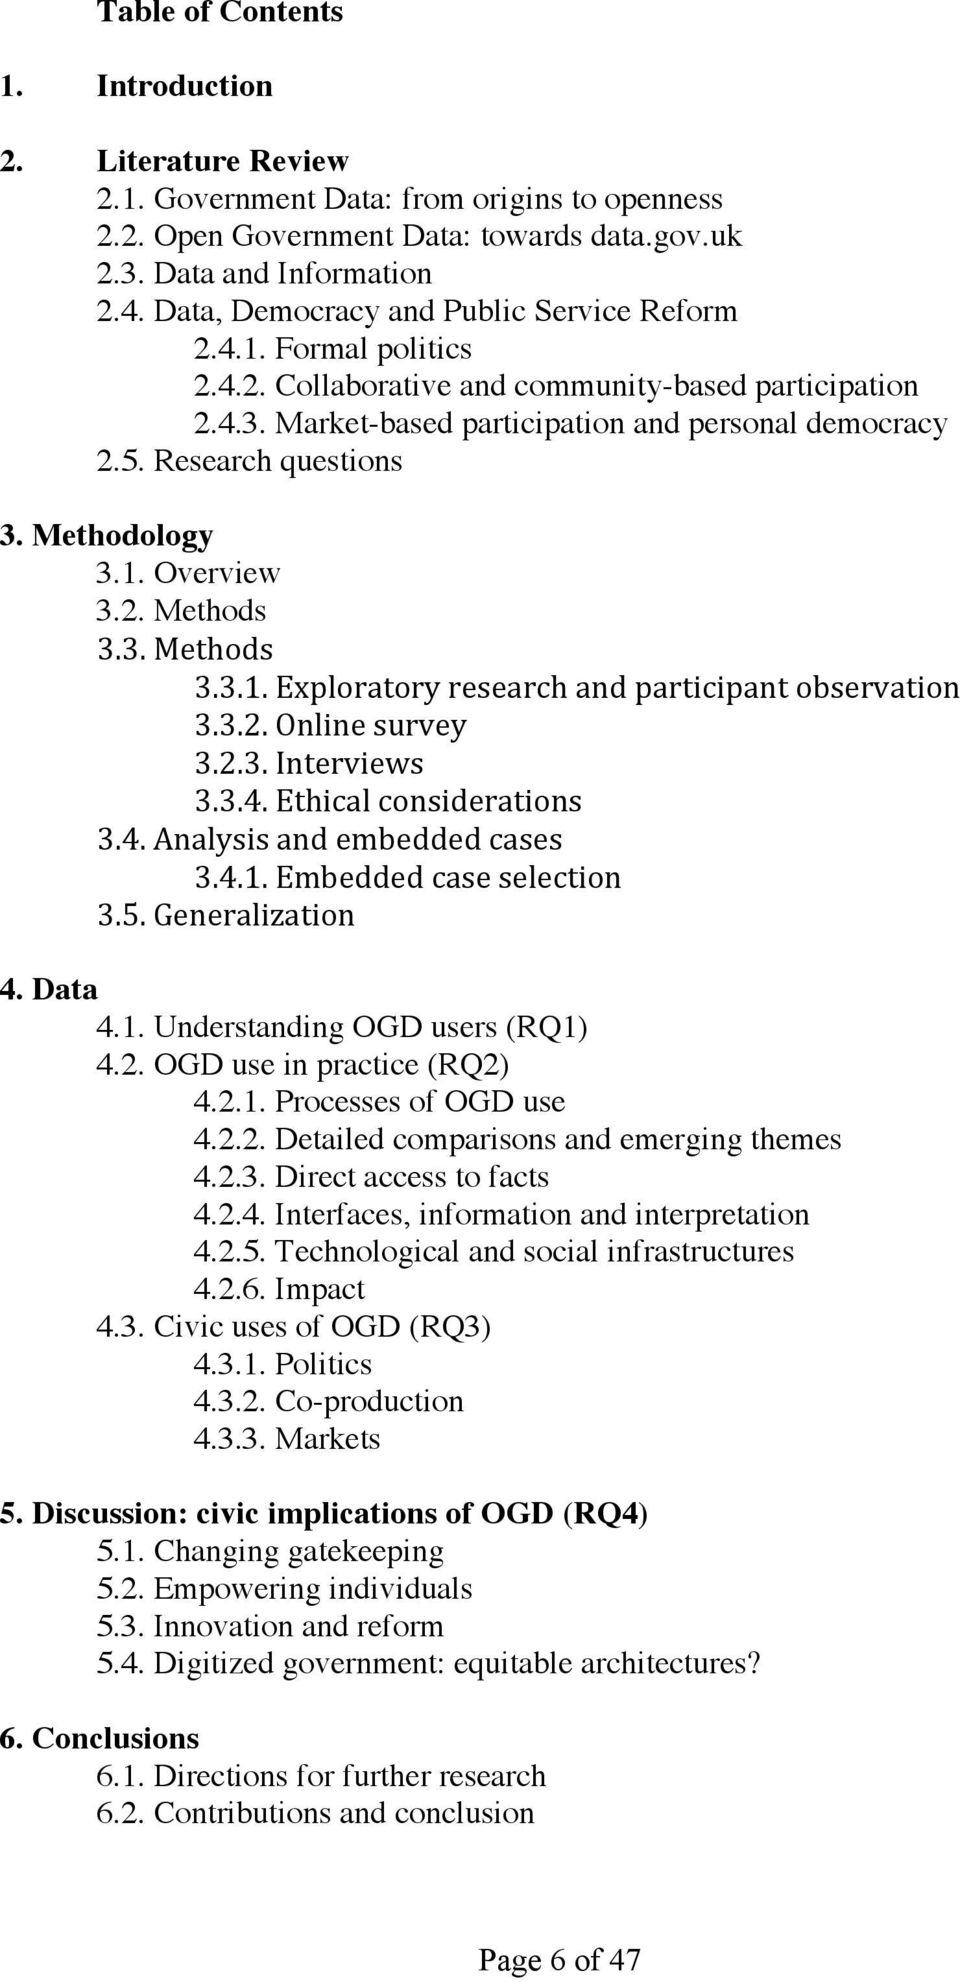 Methodology 3.1. Overview 3.2. Methods 3.3. Methods 3.3.1. Exploratory research and participant observation 3.3.2. Online survey 3.2.3. Interviews 3.3.4. Ethical considerations 3.4. Analysis and embedded cases 3.